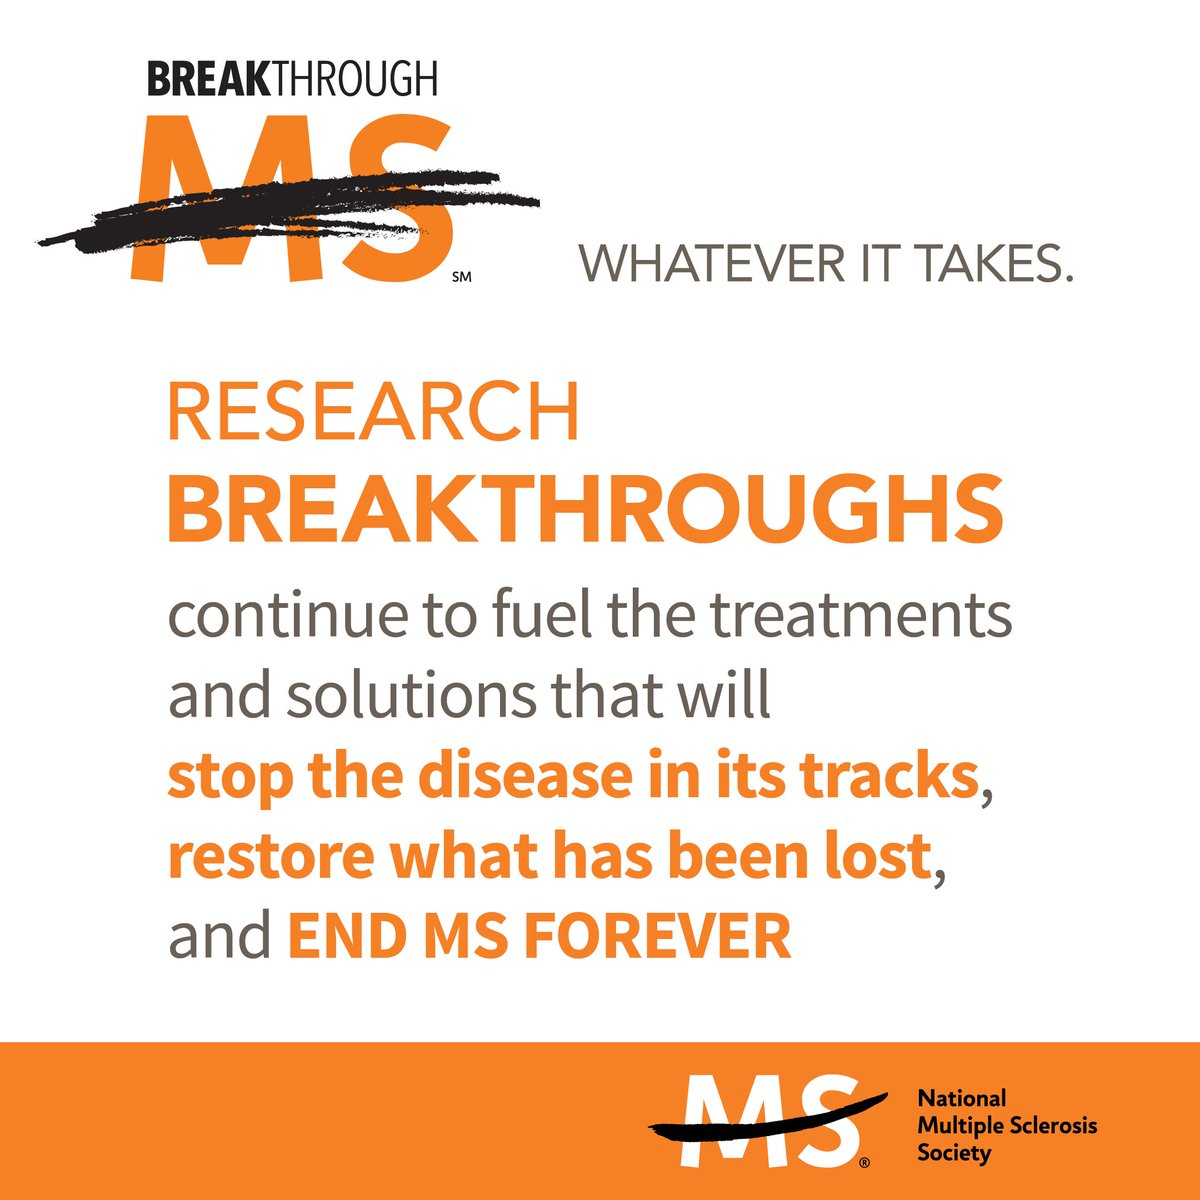 the national multiple sclerosis society in Jobs for people with ms: national ms society not national ms society's internal jobs jobs for people with ms: national ms society.